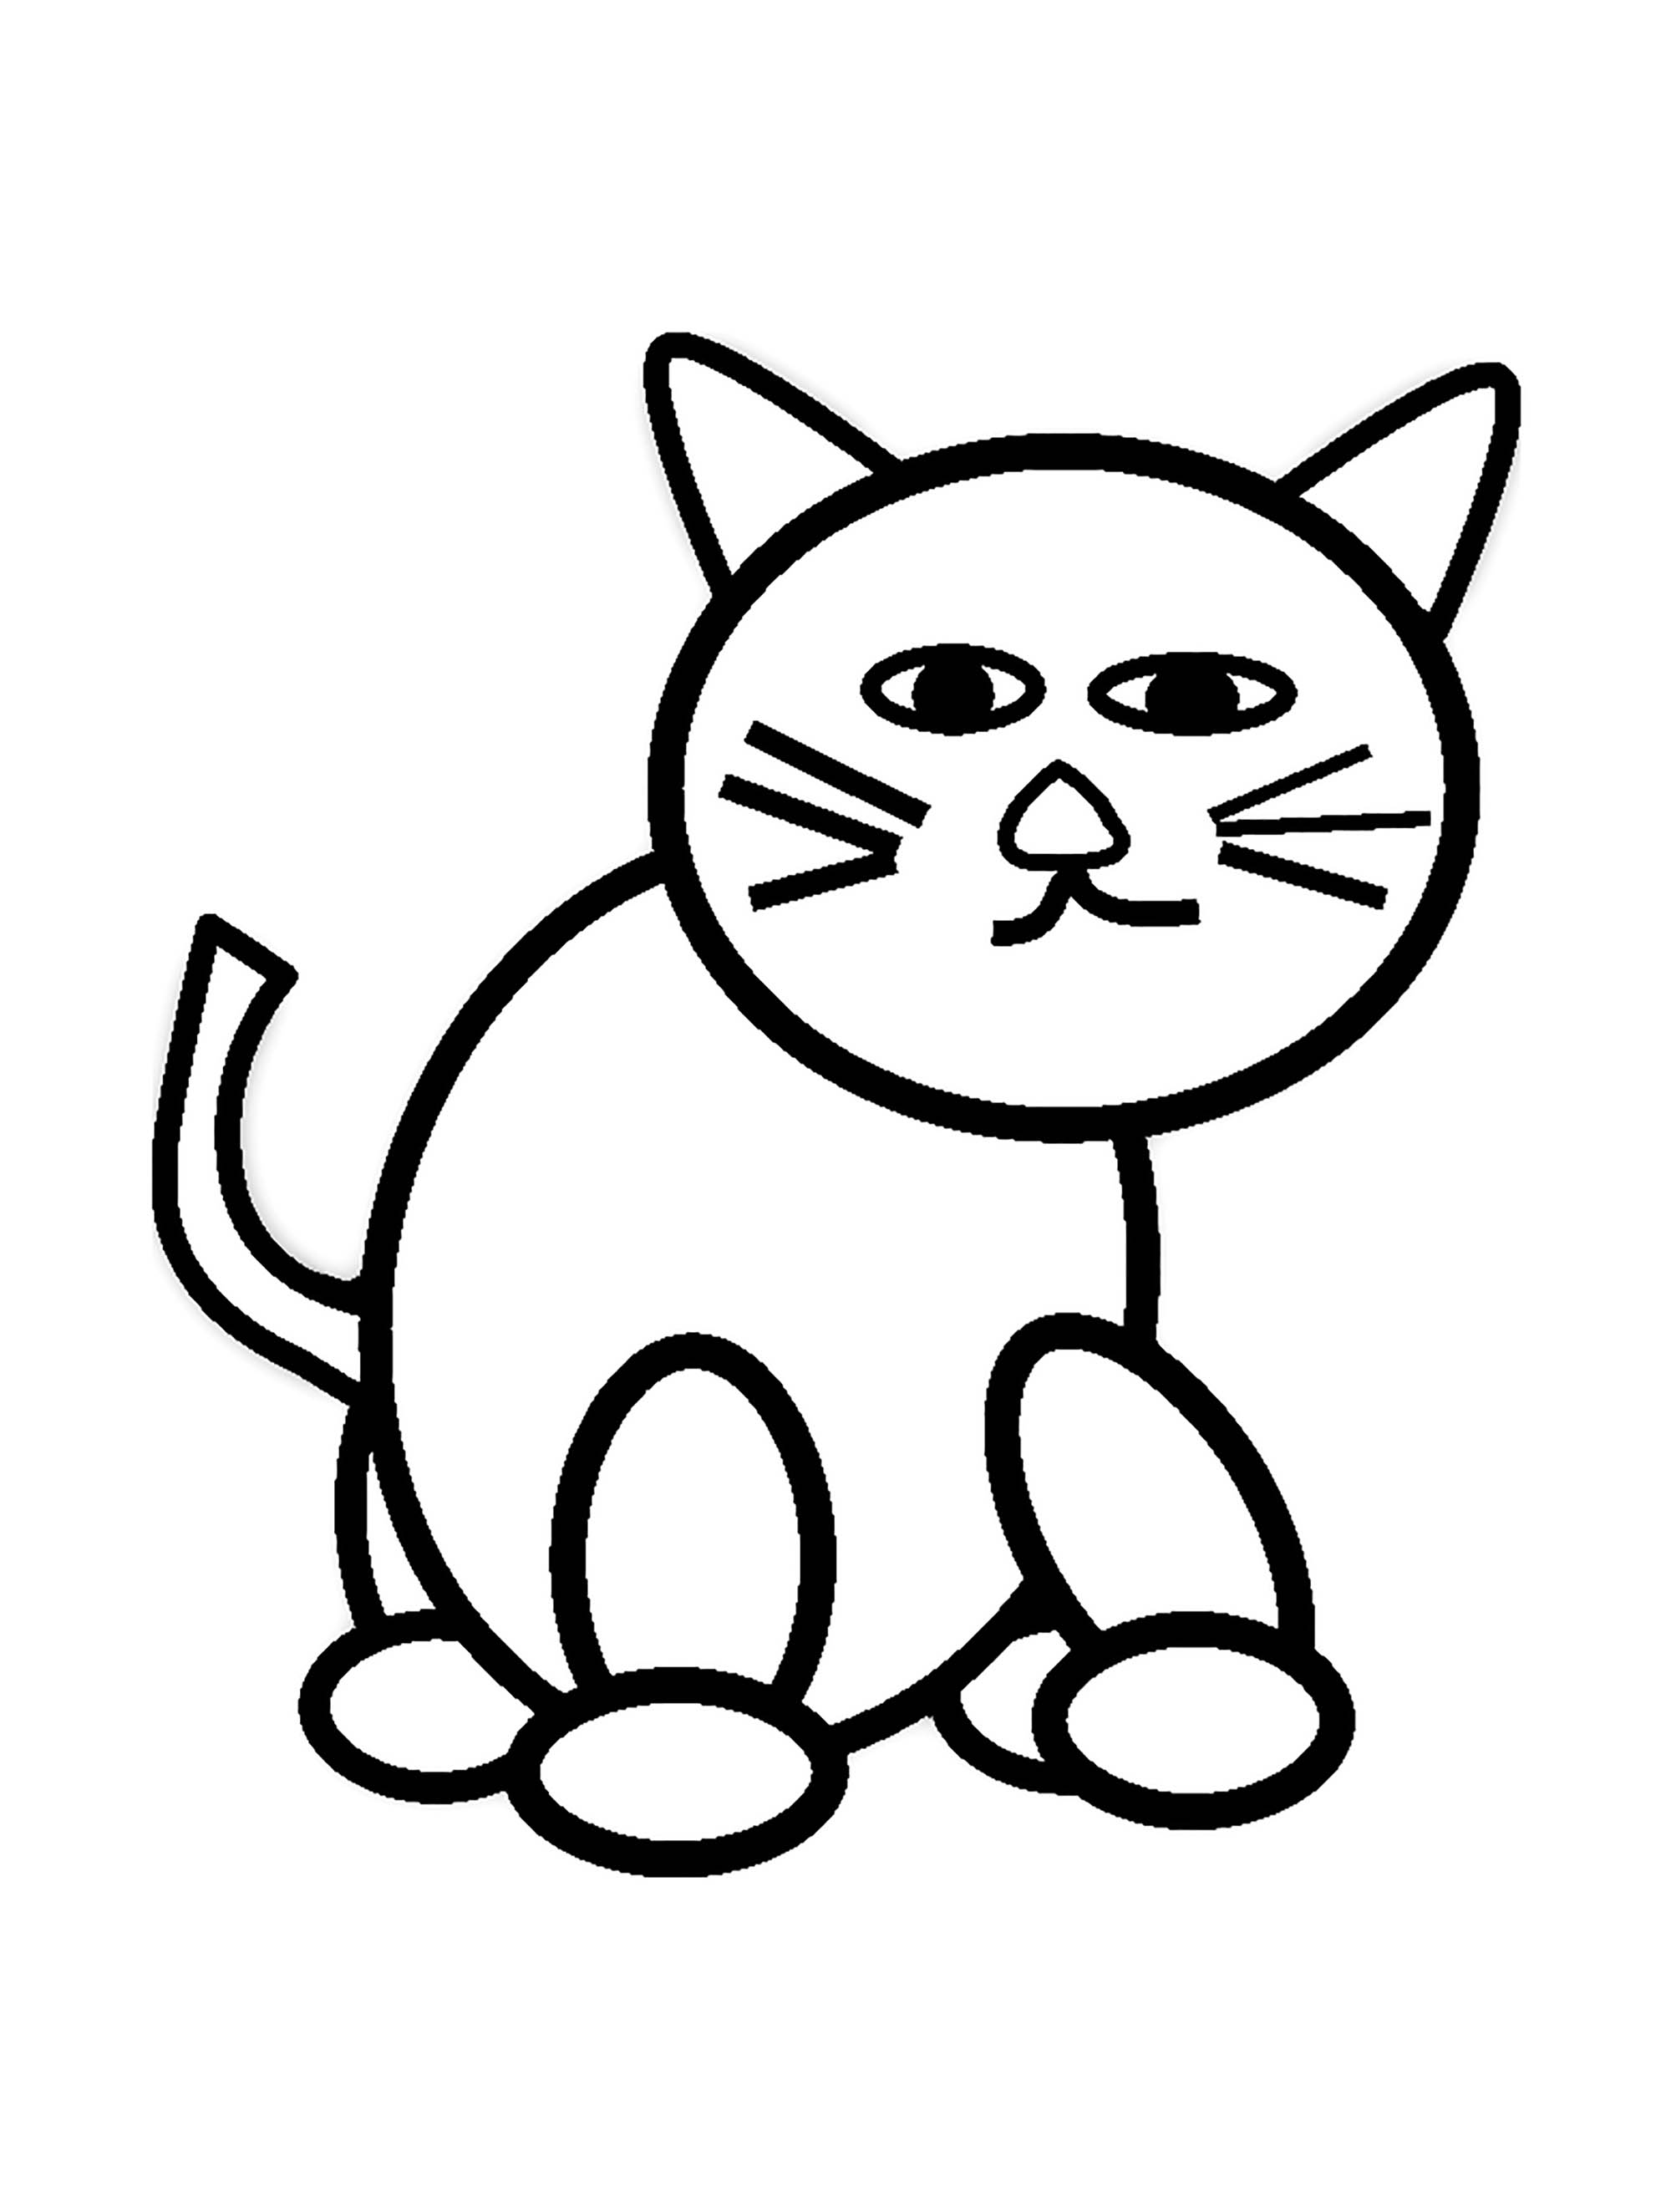 kids easy coloring book simple coloring pages for kids at getdrawings free download kids coloring book easy